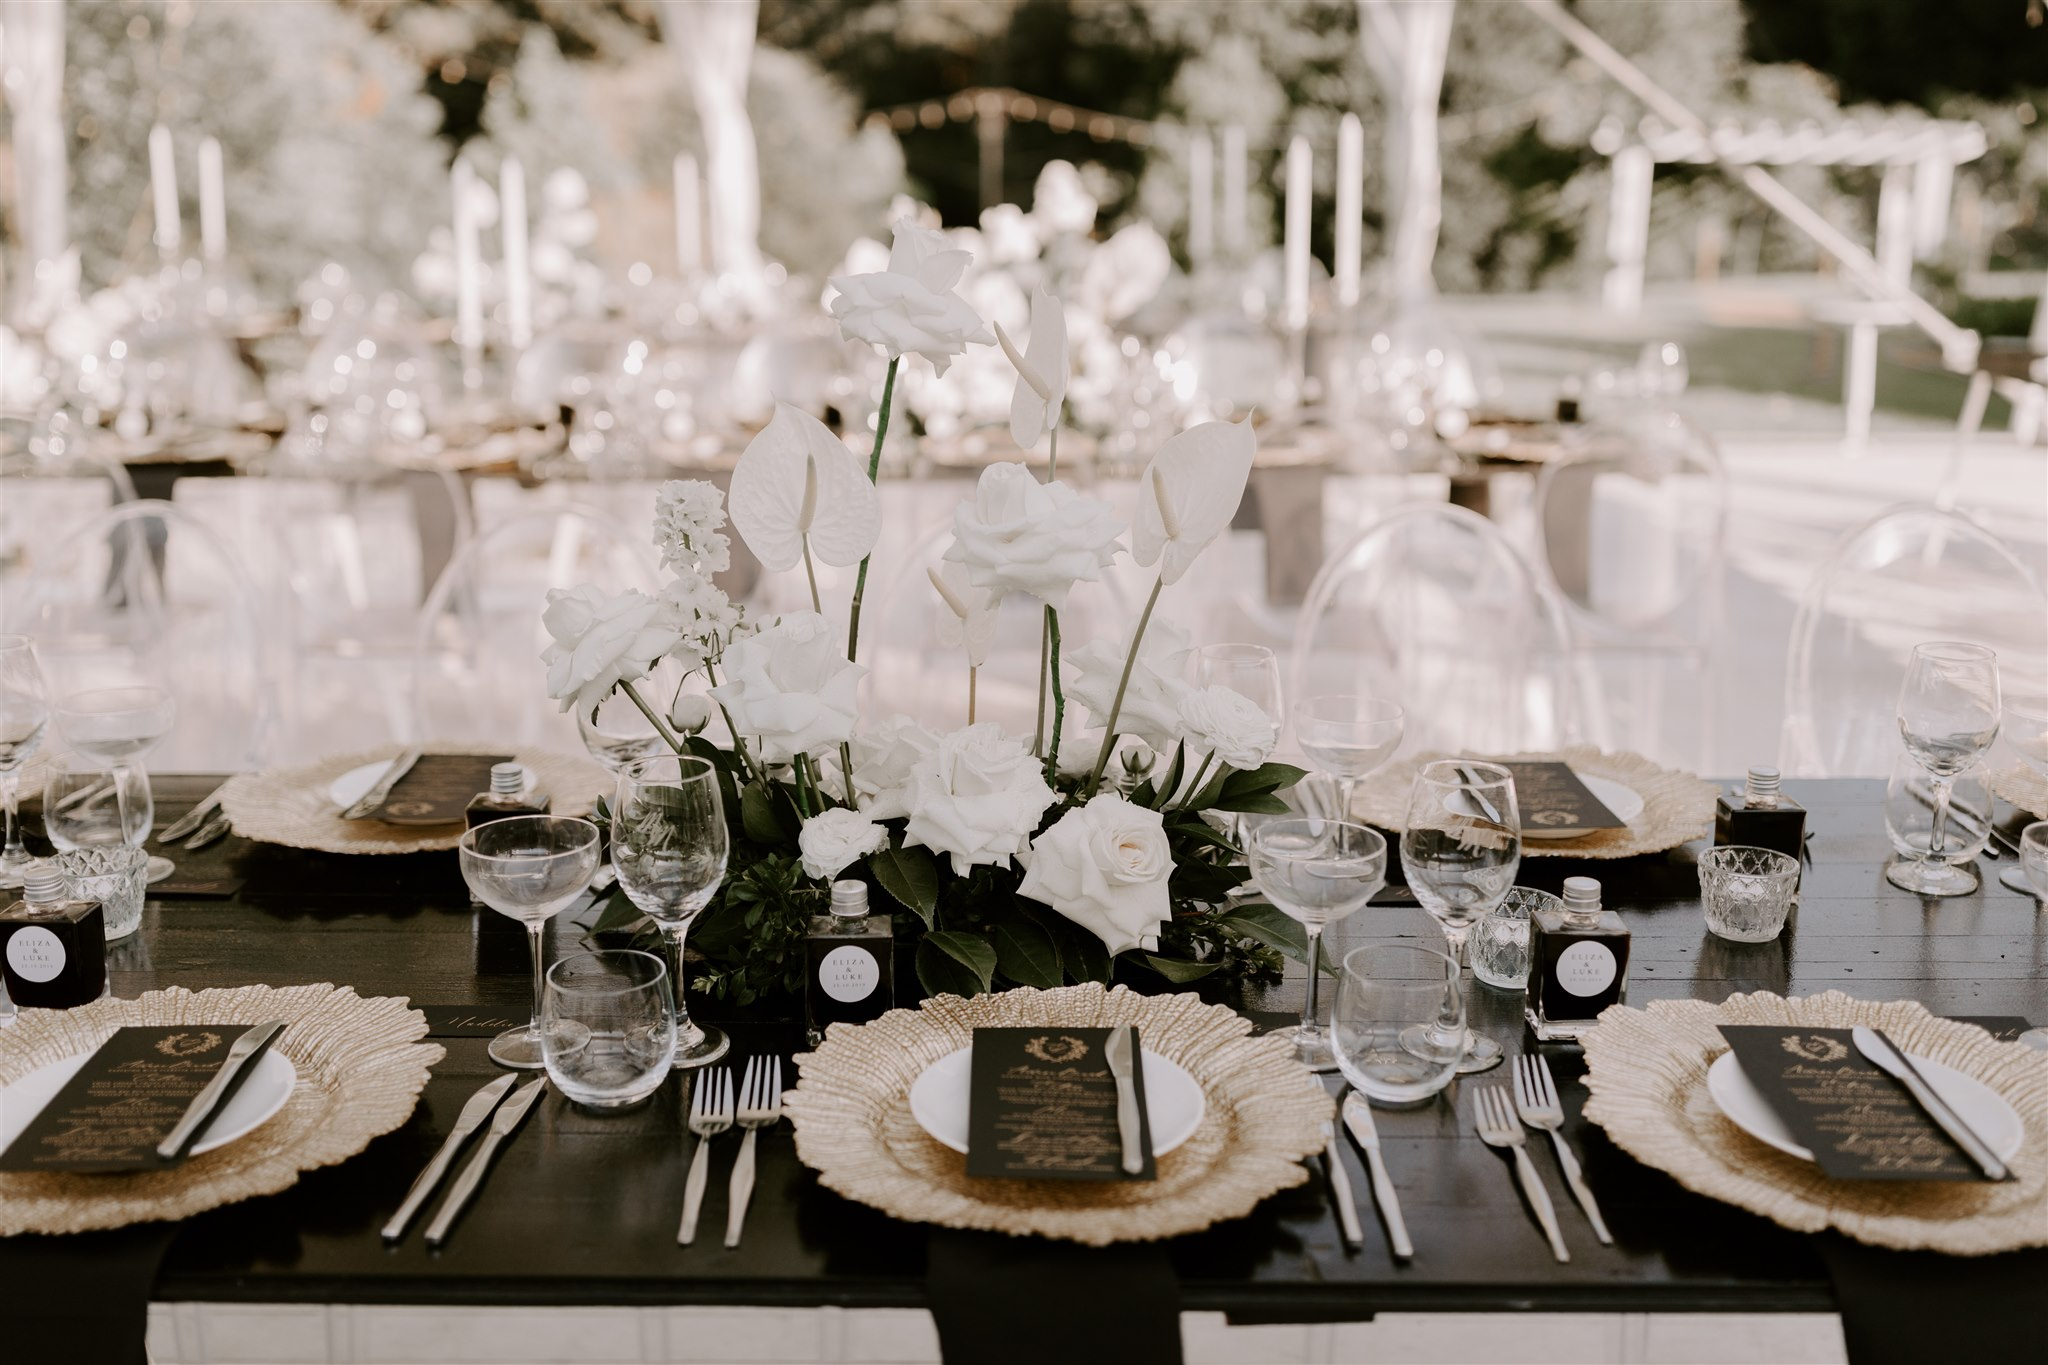 Low lying floral table designs